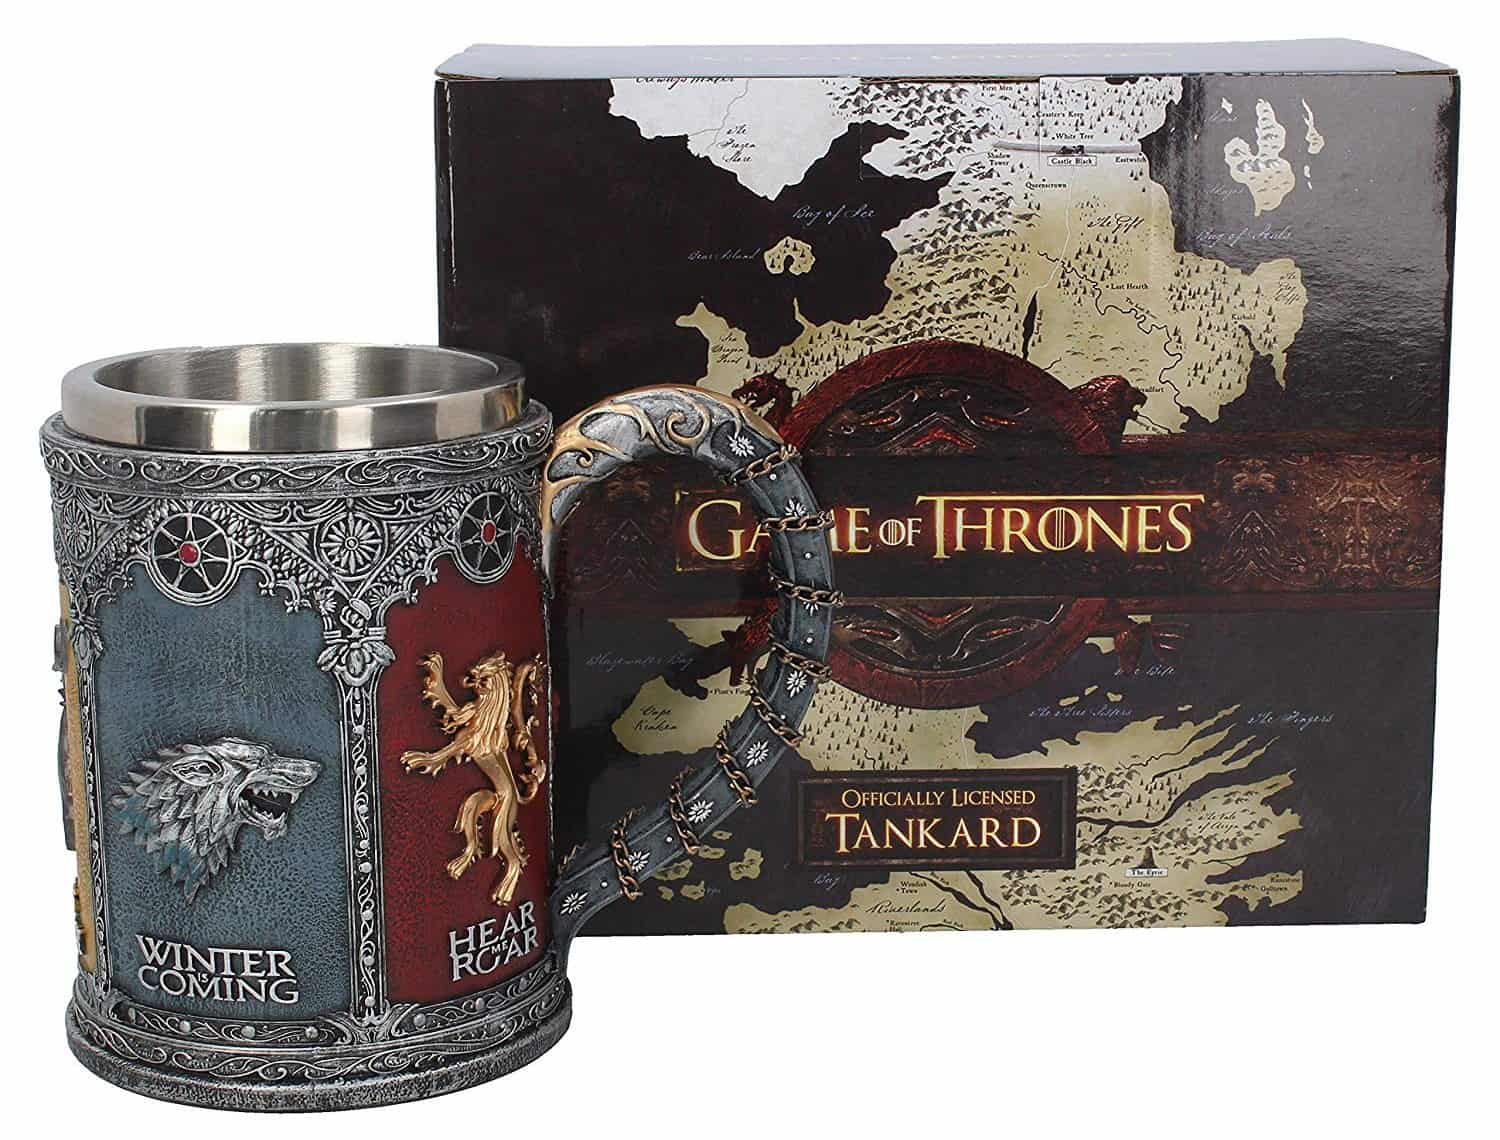 14 Things to Help You Welcome the Final Season of Game of Thrones